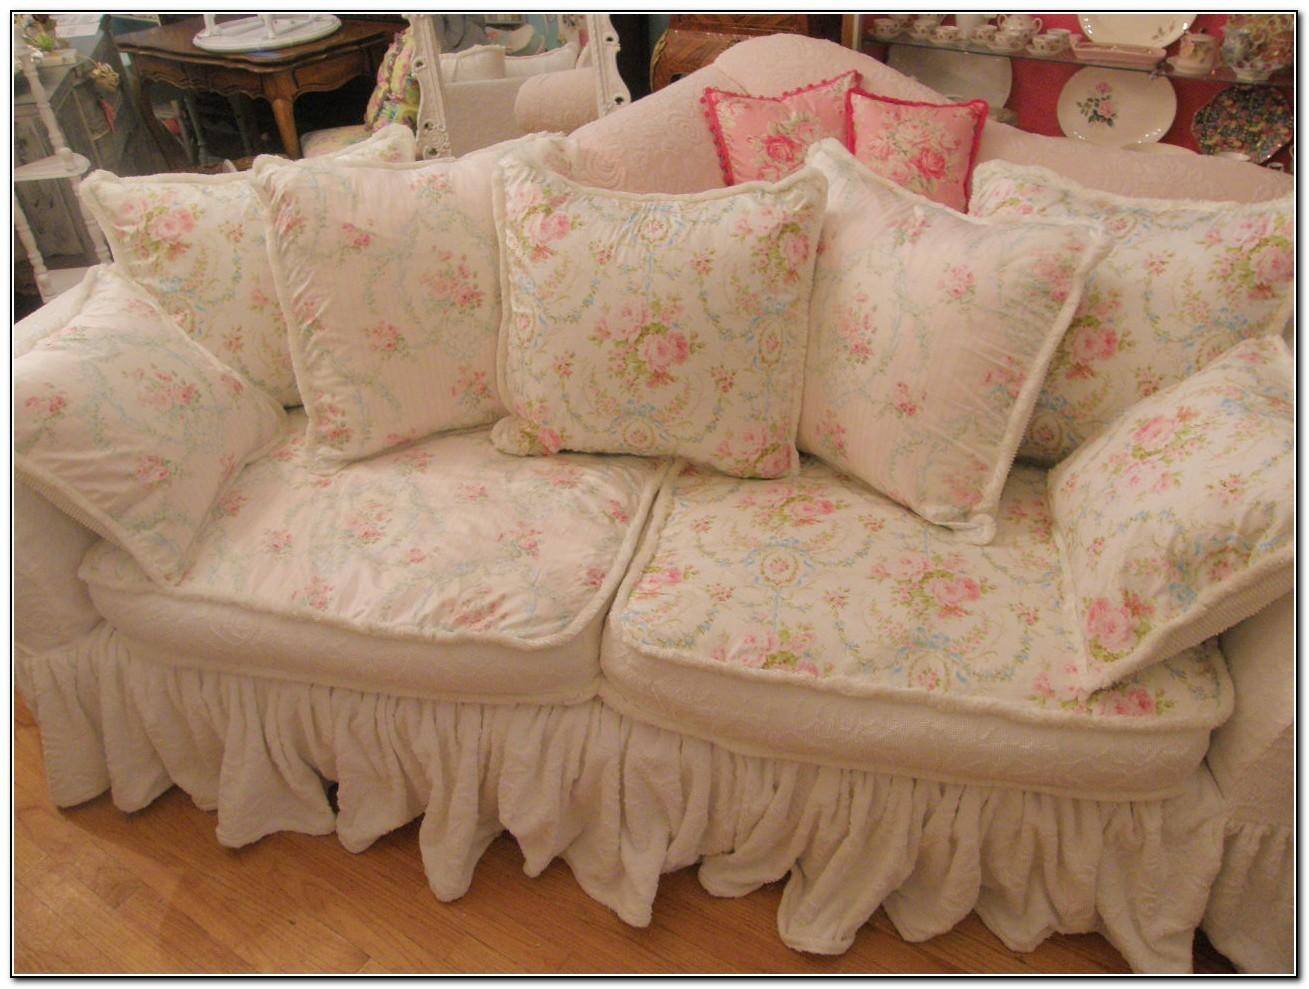 20 collection of shabby chic sofa tables sofa ideas. Black Bedroom Furniture Sets. Home Design Ideas